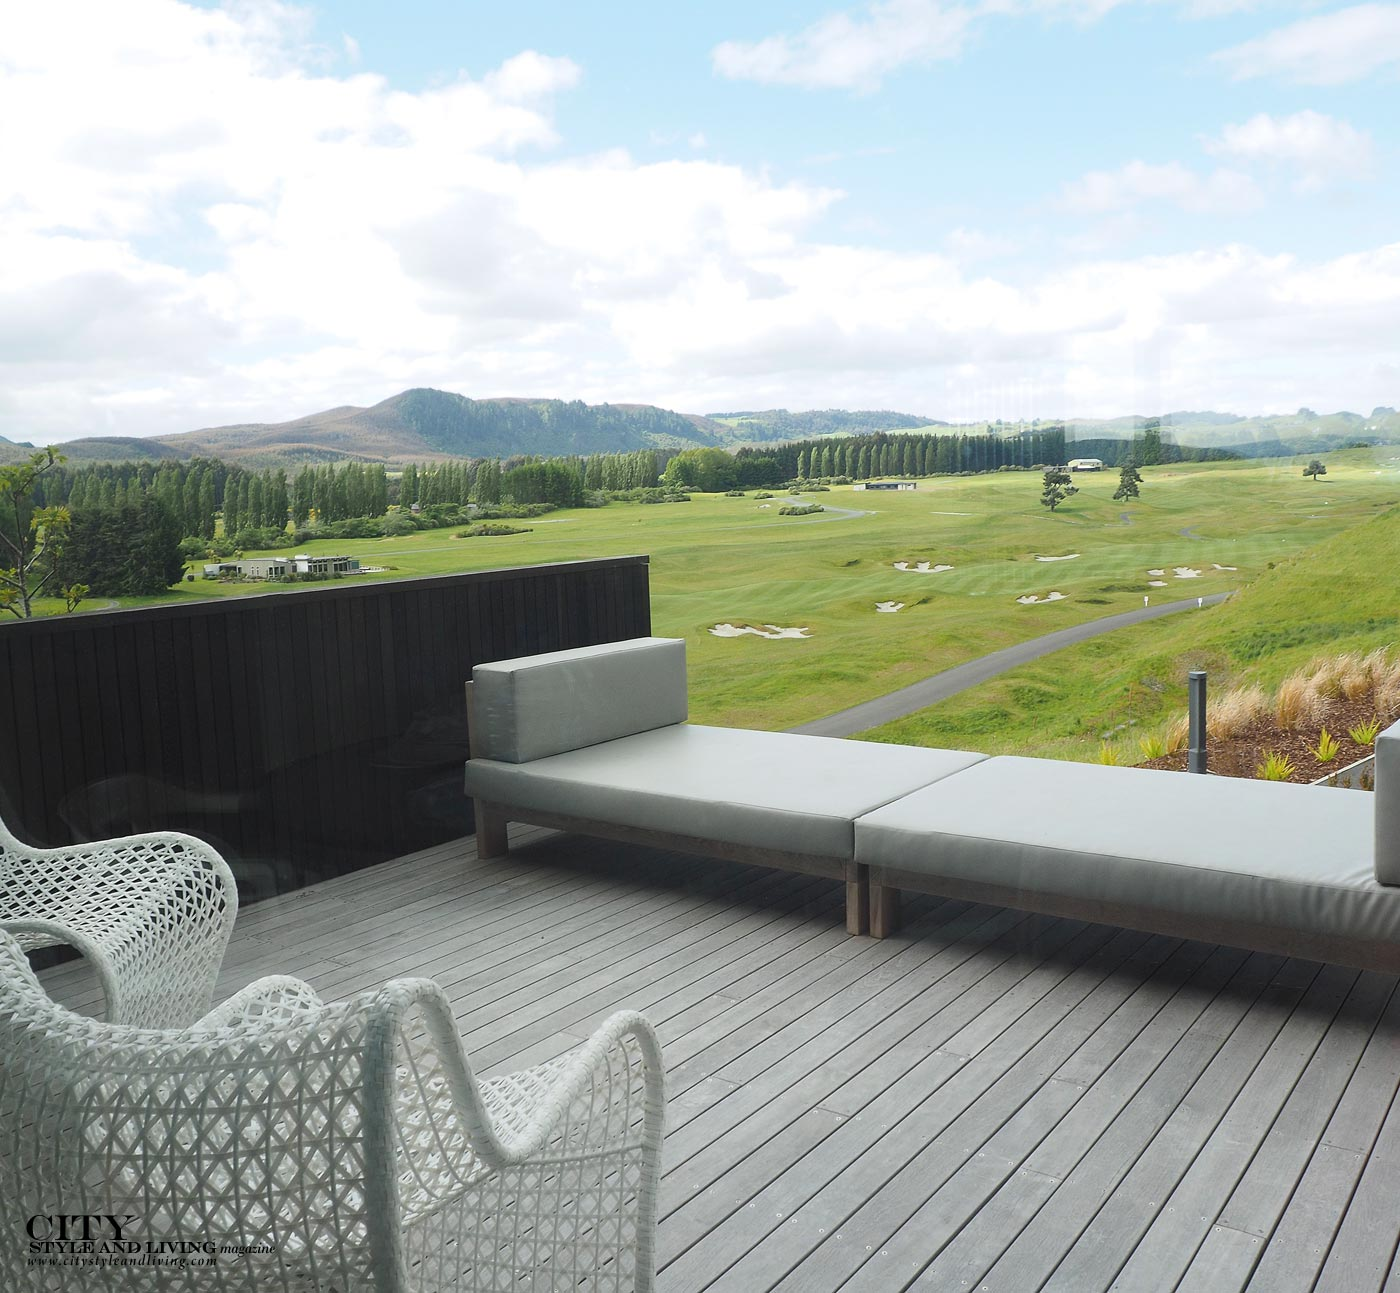 City Style and Living Magazine Luxury Hotel Kinloch Club New Zealand View from villa onto golf course scenery